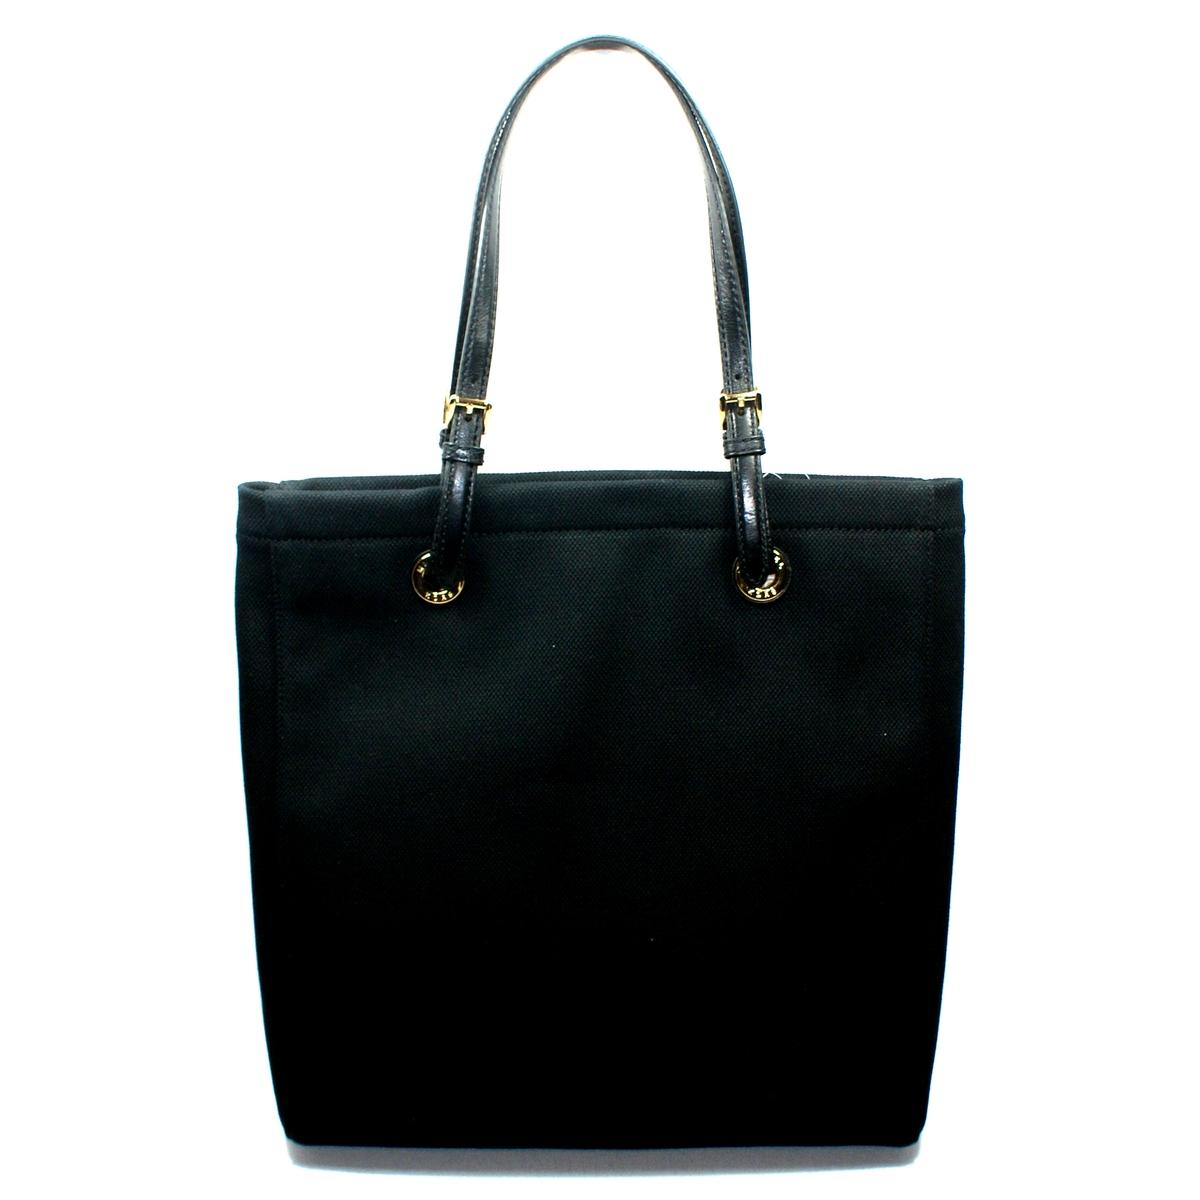 Michael Kors Jet Set Black Canvas Tote 38s1cttt3b